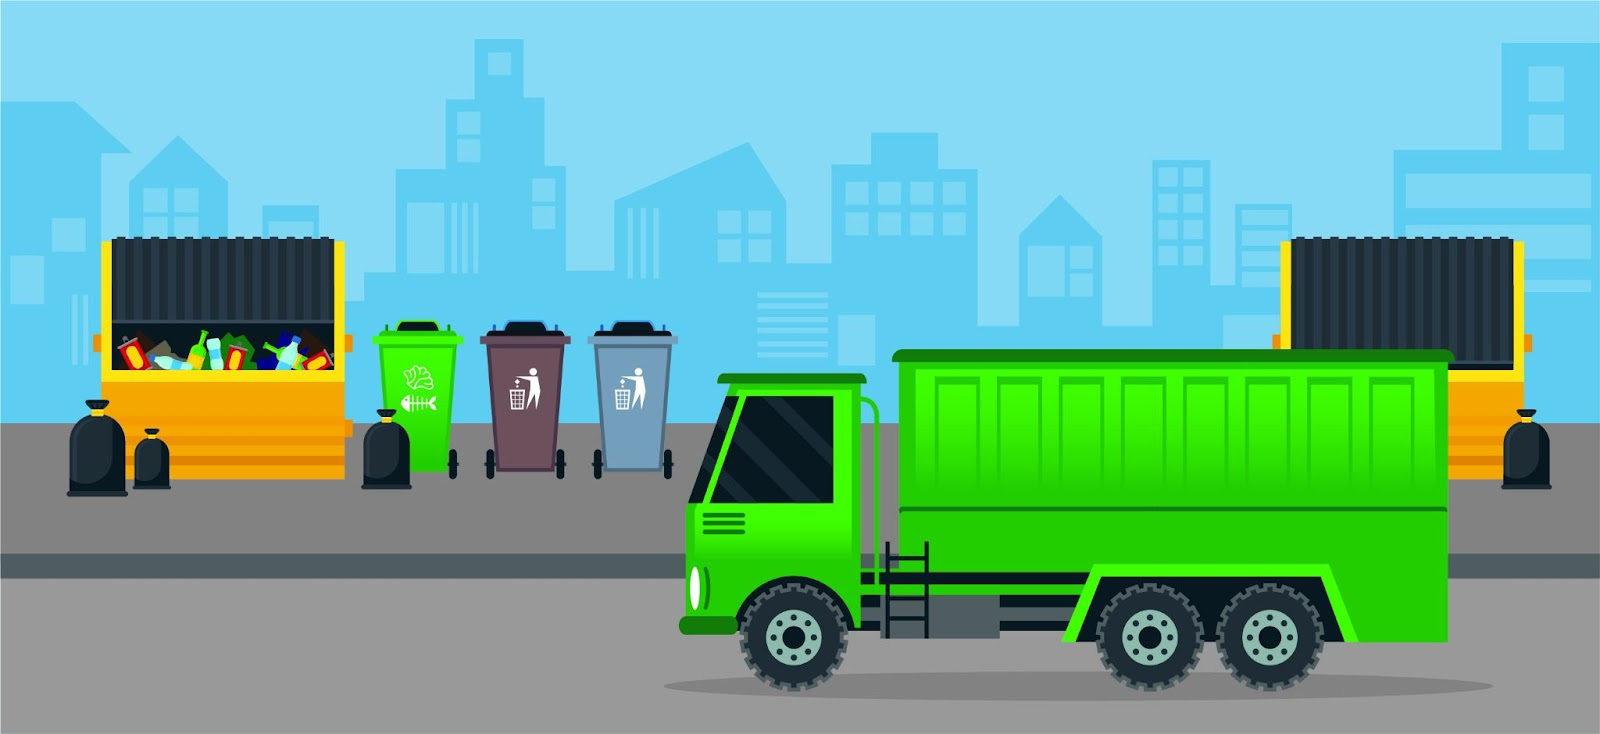 An illustration of a trash truck on a road in front of several dumpsters, trash cans, trash bins, and full trash bags.